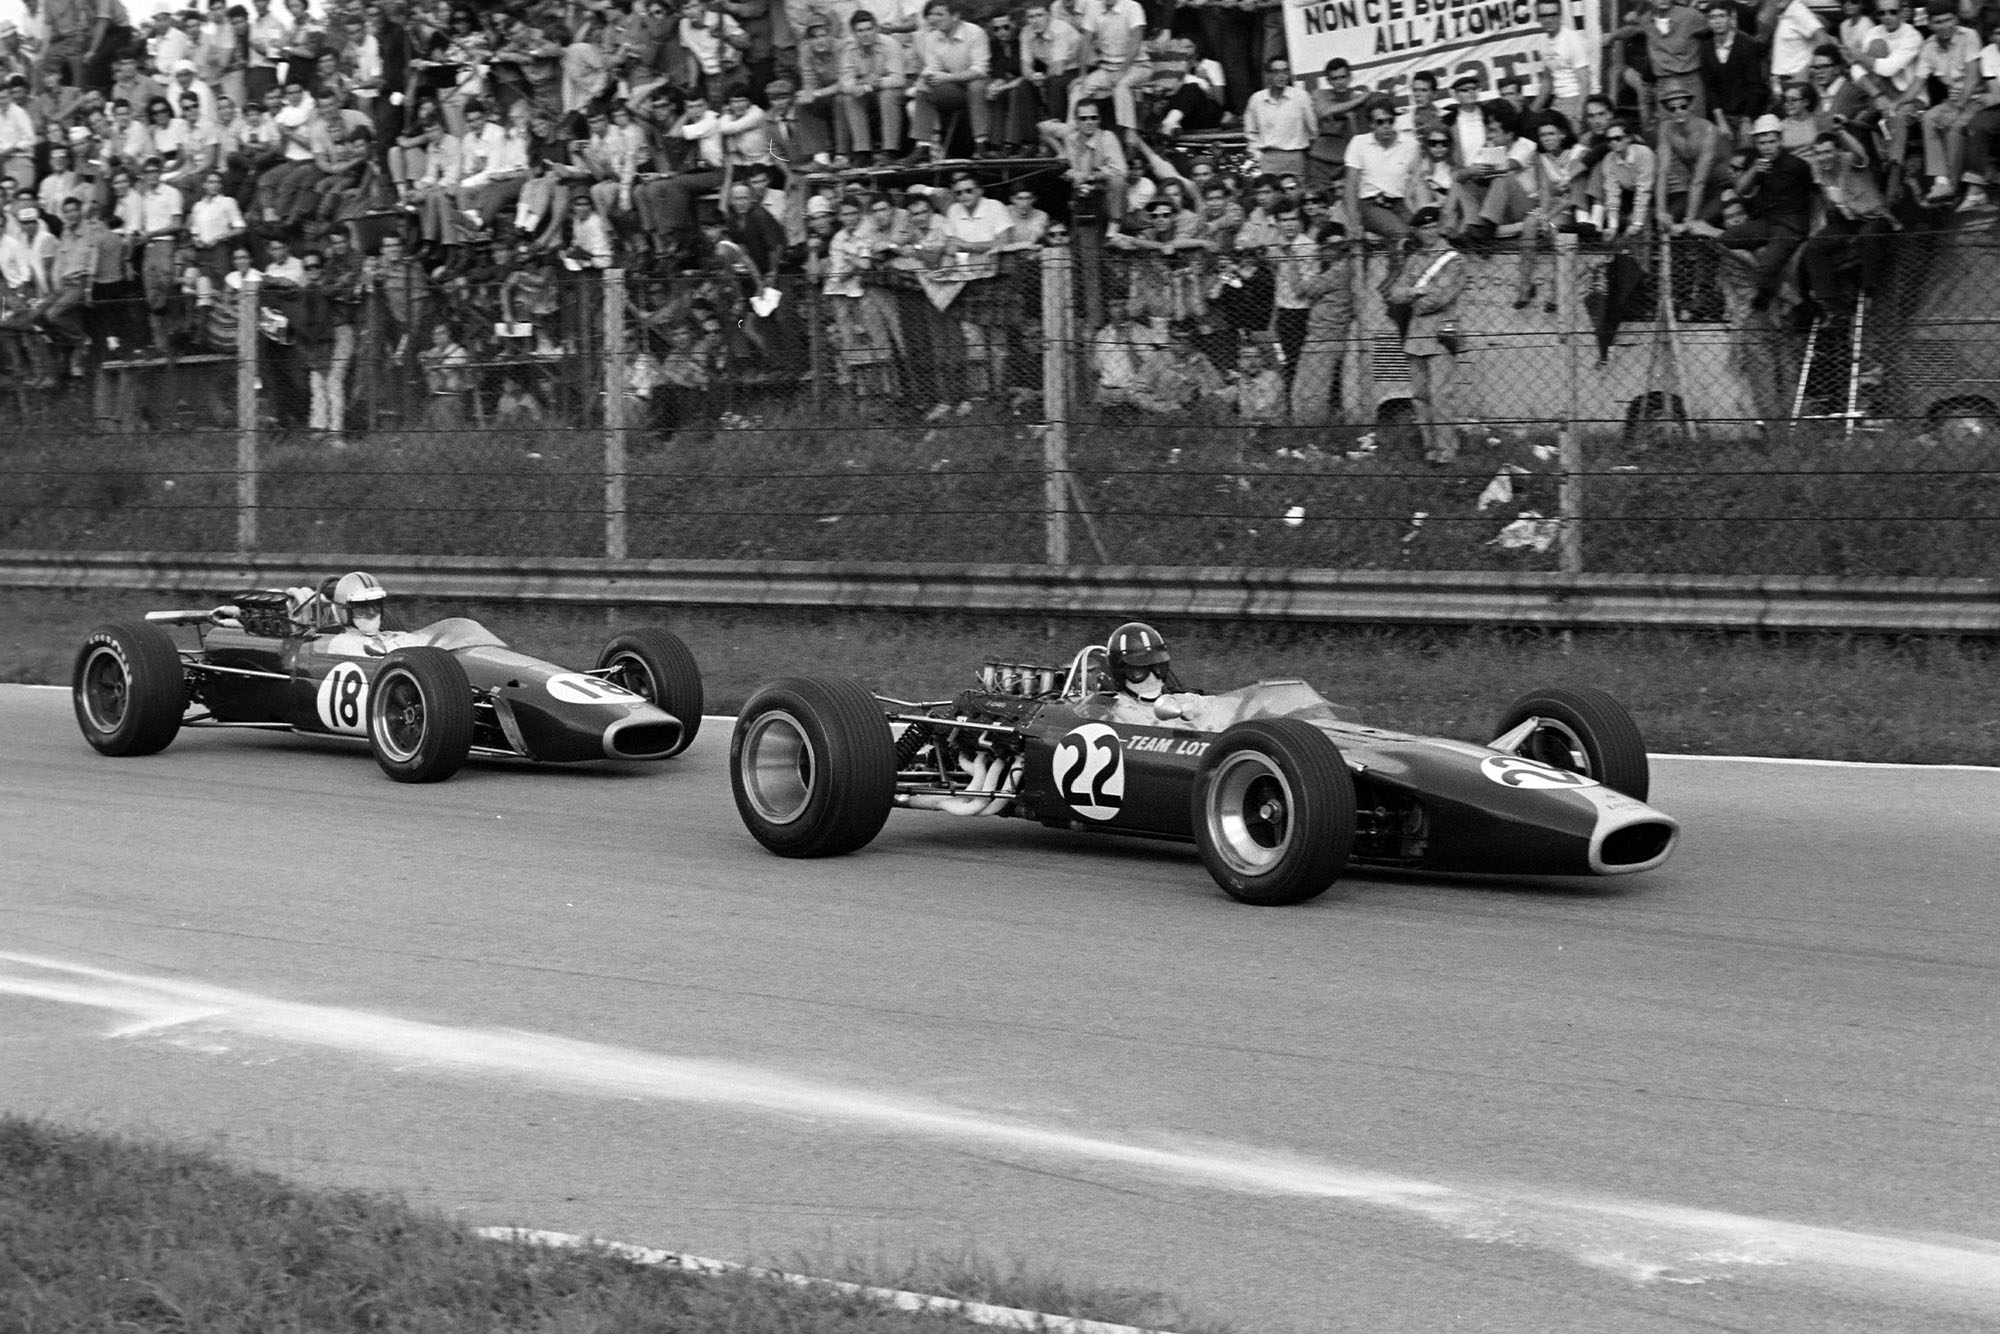 Graham Hill, Lotus 49 Ford, leads Denny Hulme, Brabham BT24 Repco.